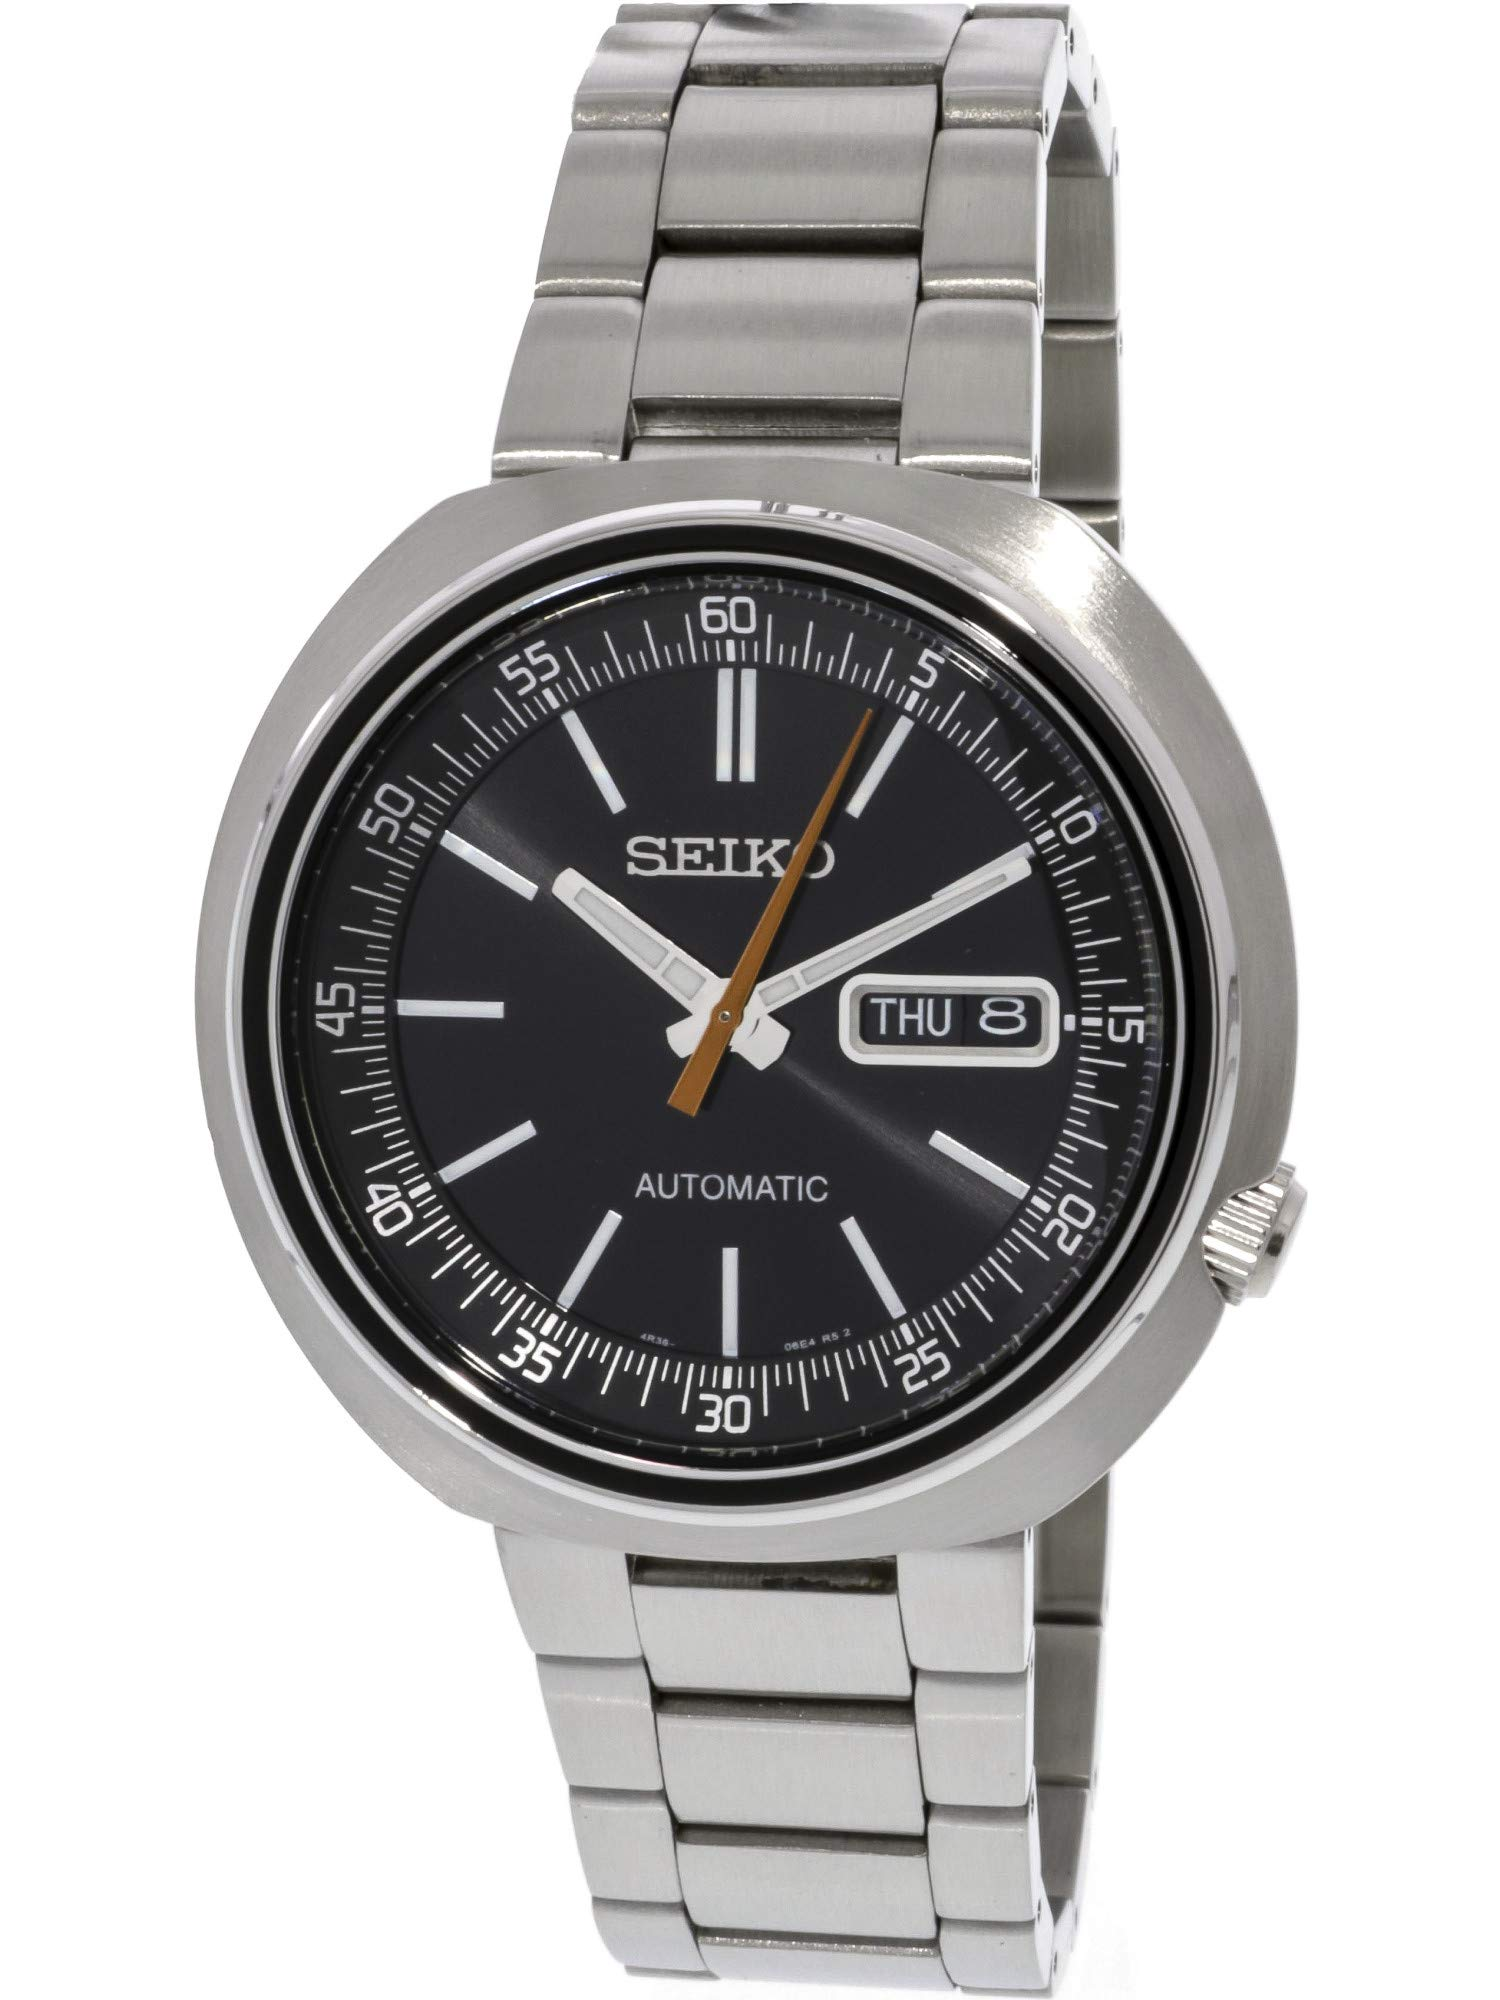 Seiko Mens Analogue Automatic Watch with Stainless Steel Strap SRPC11K1